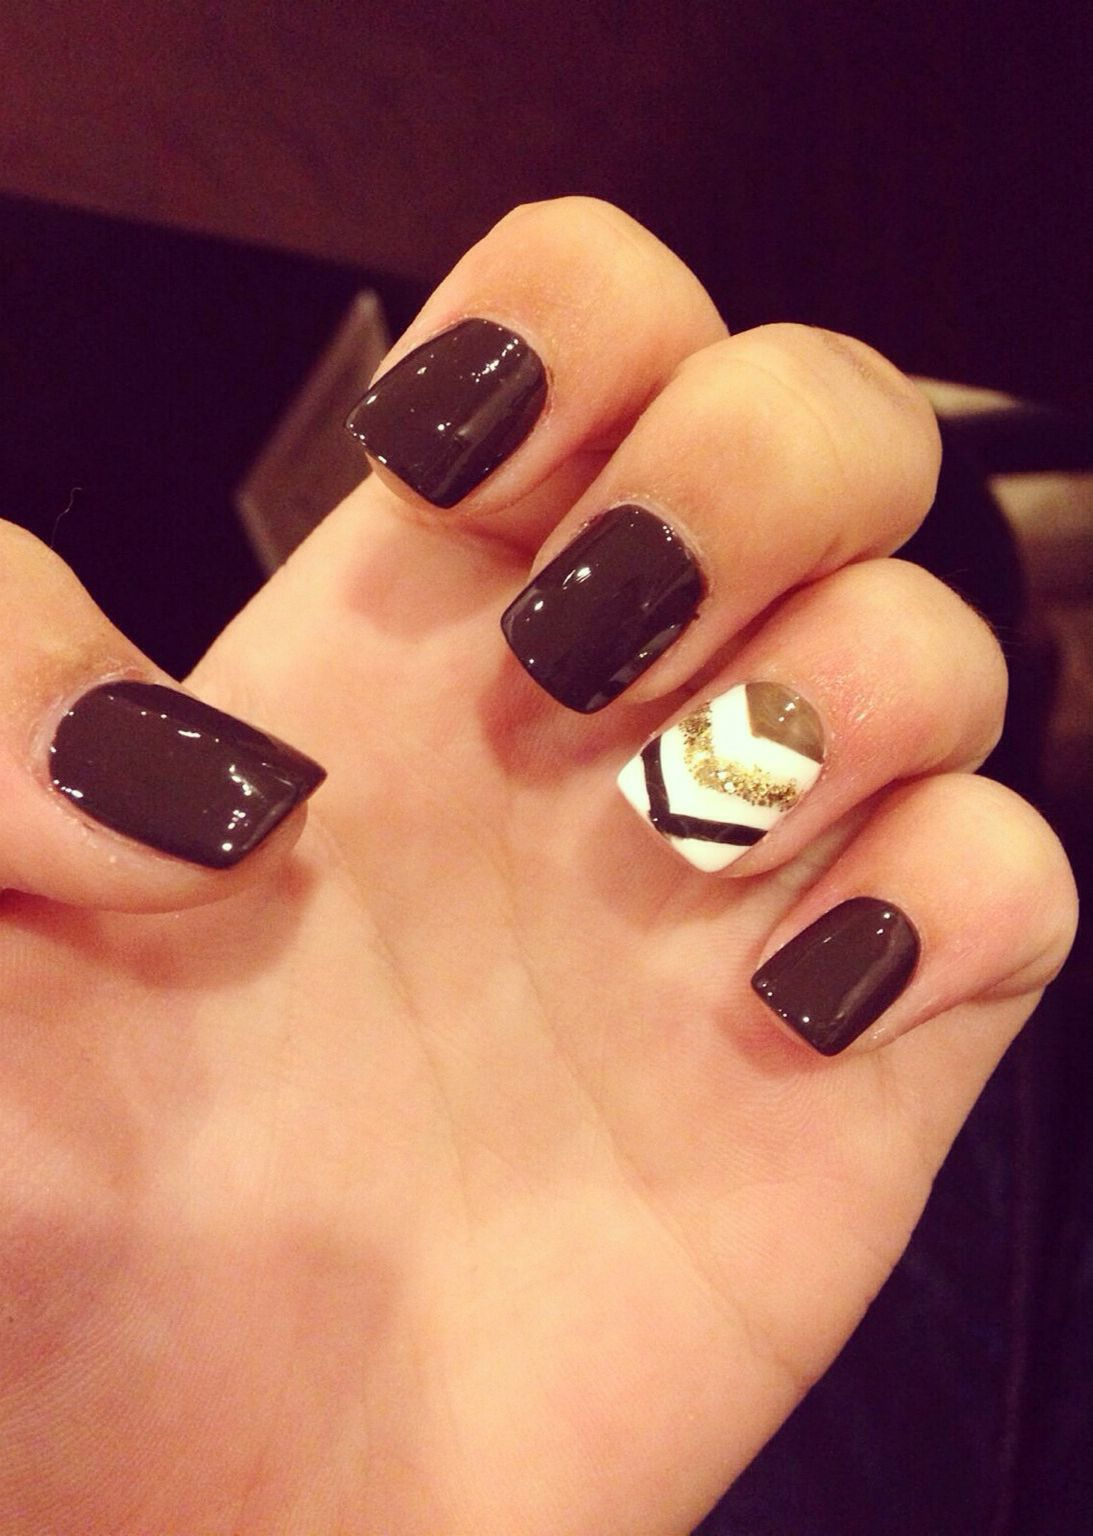 Love this manicure | Nails and nail ideas | Pinterest | Manicure ...